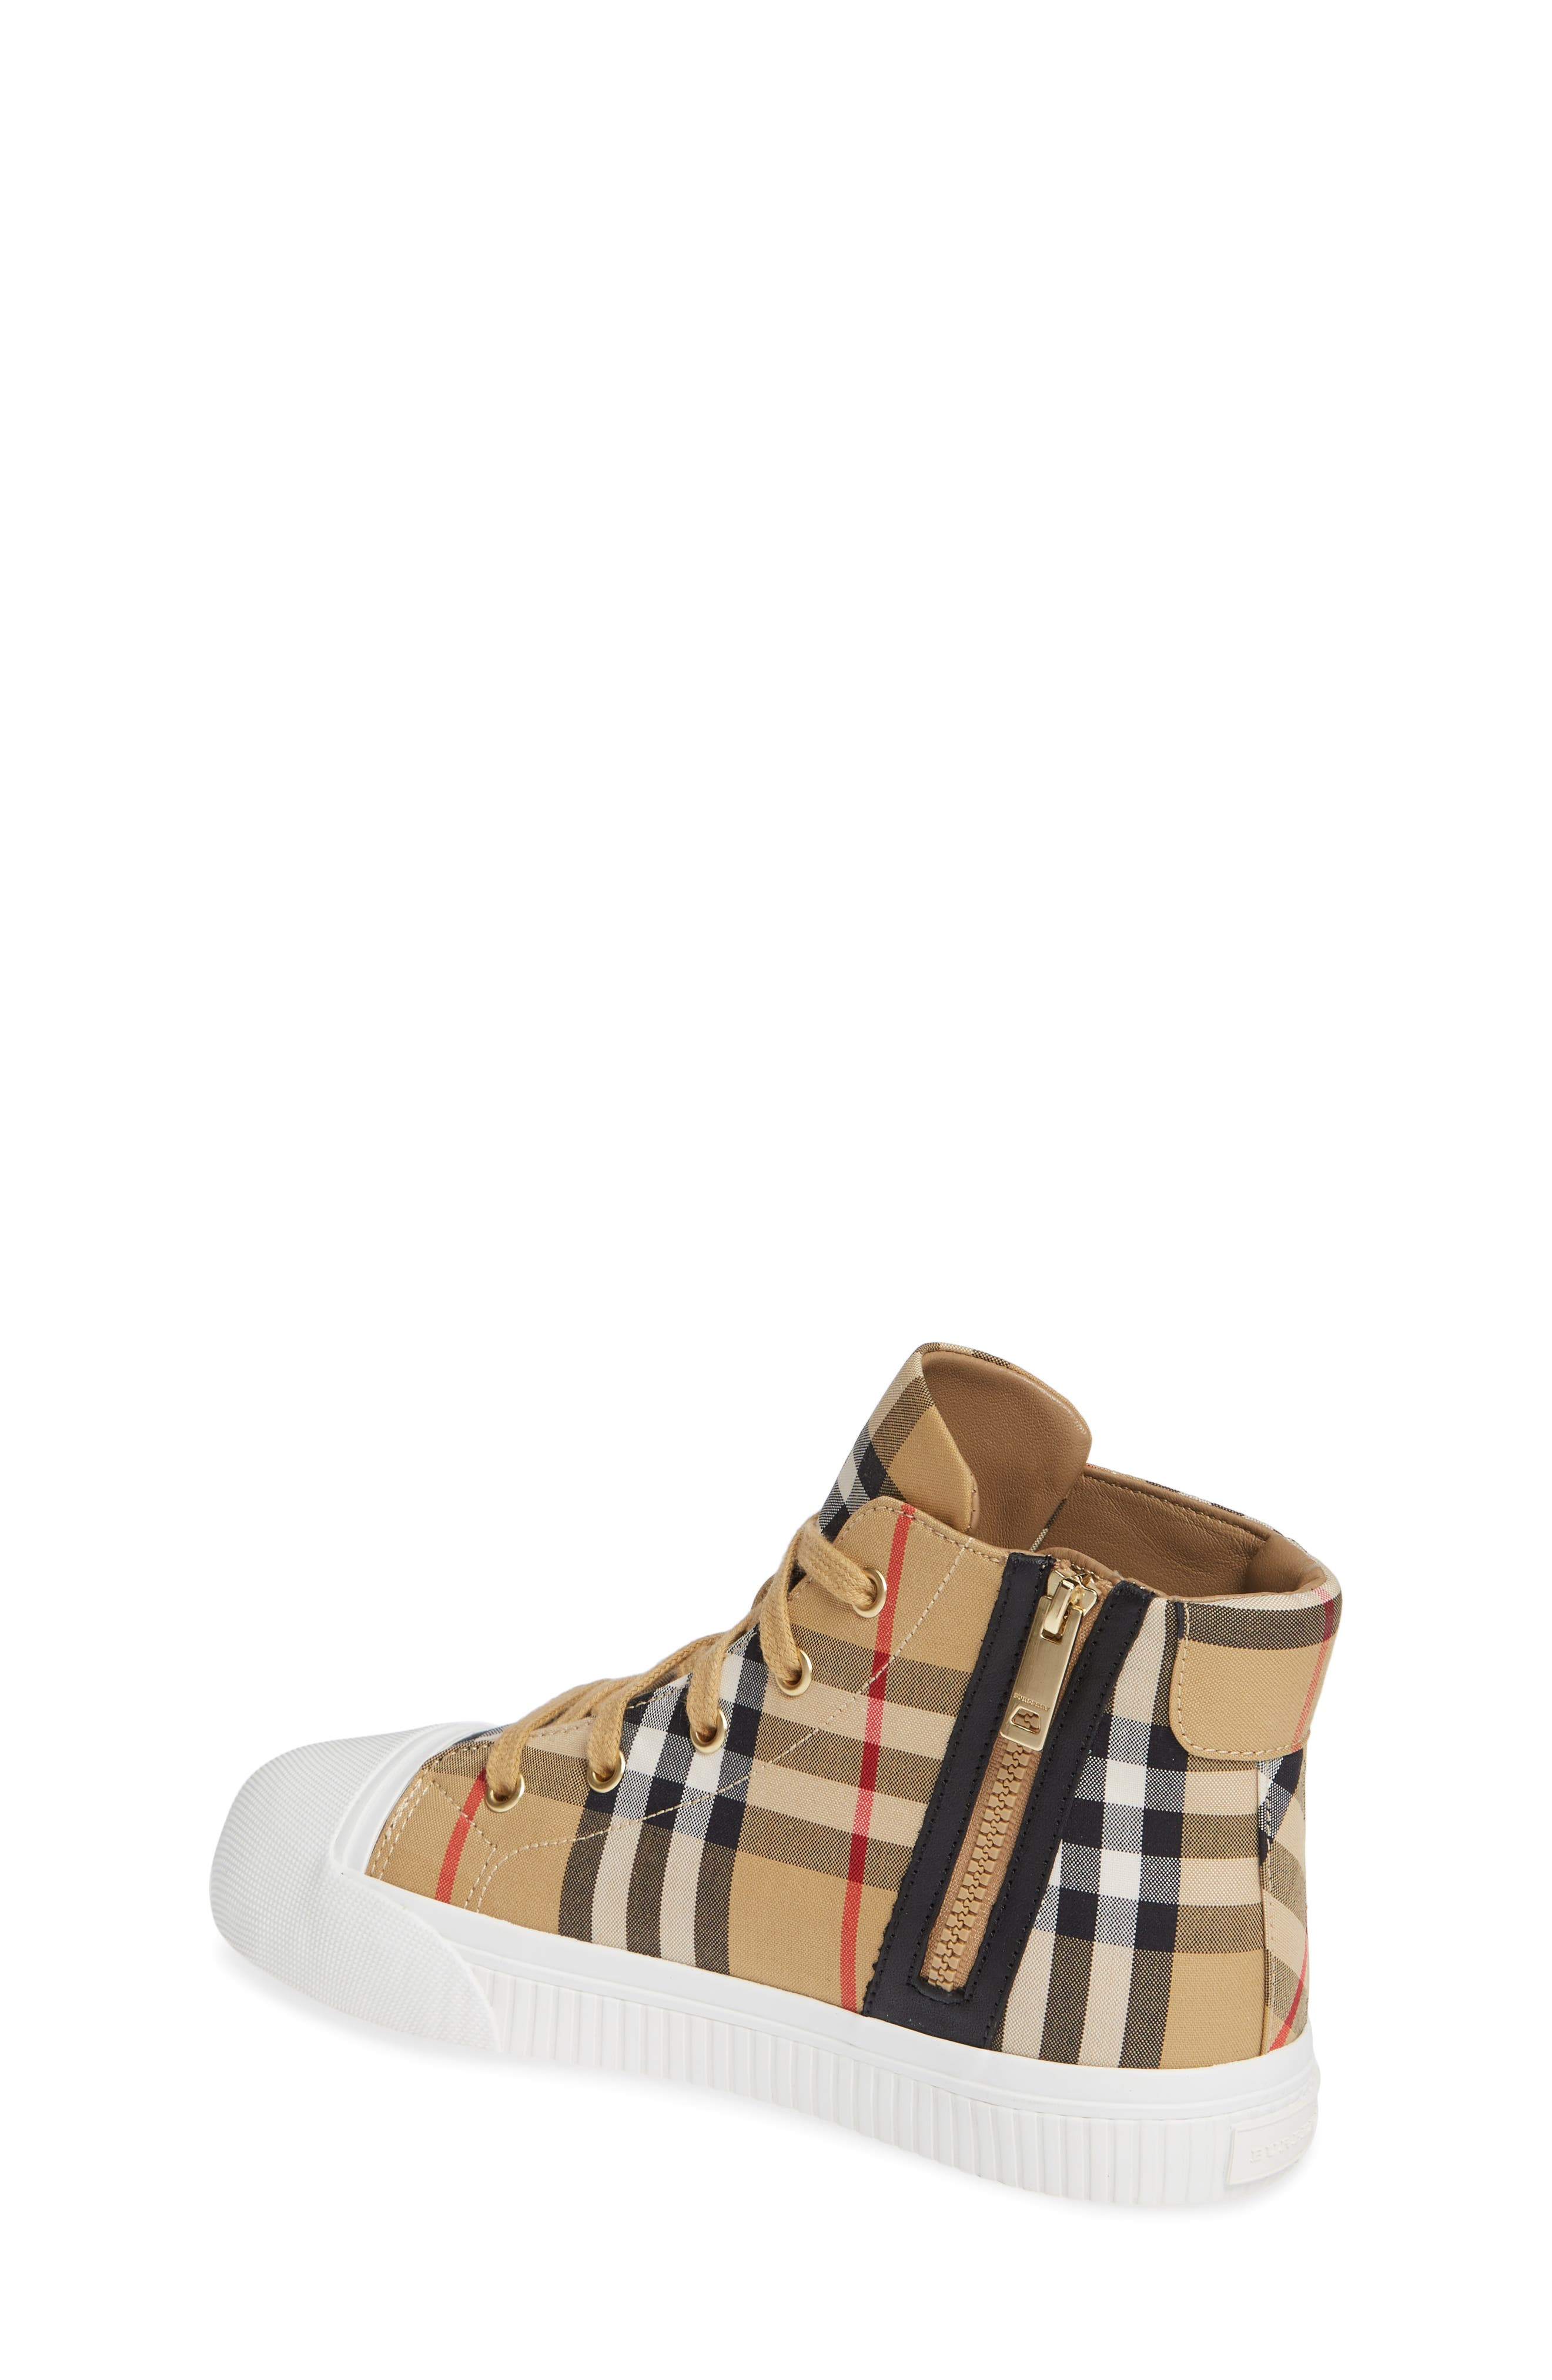 BURBERRY, Belford High-Top Sneaker, Alternate thumbnail 2, color, ANTIQUE YELLOW/ OPTIC WHITE